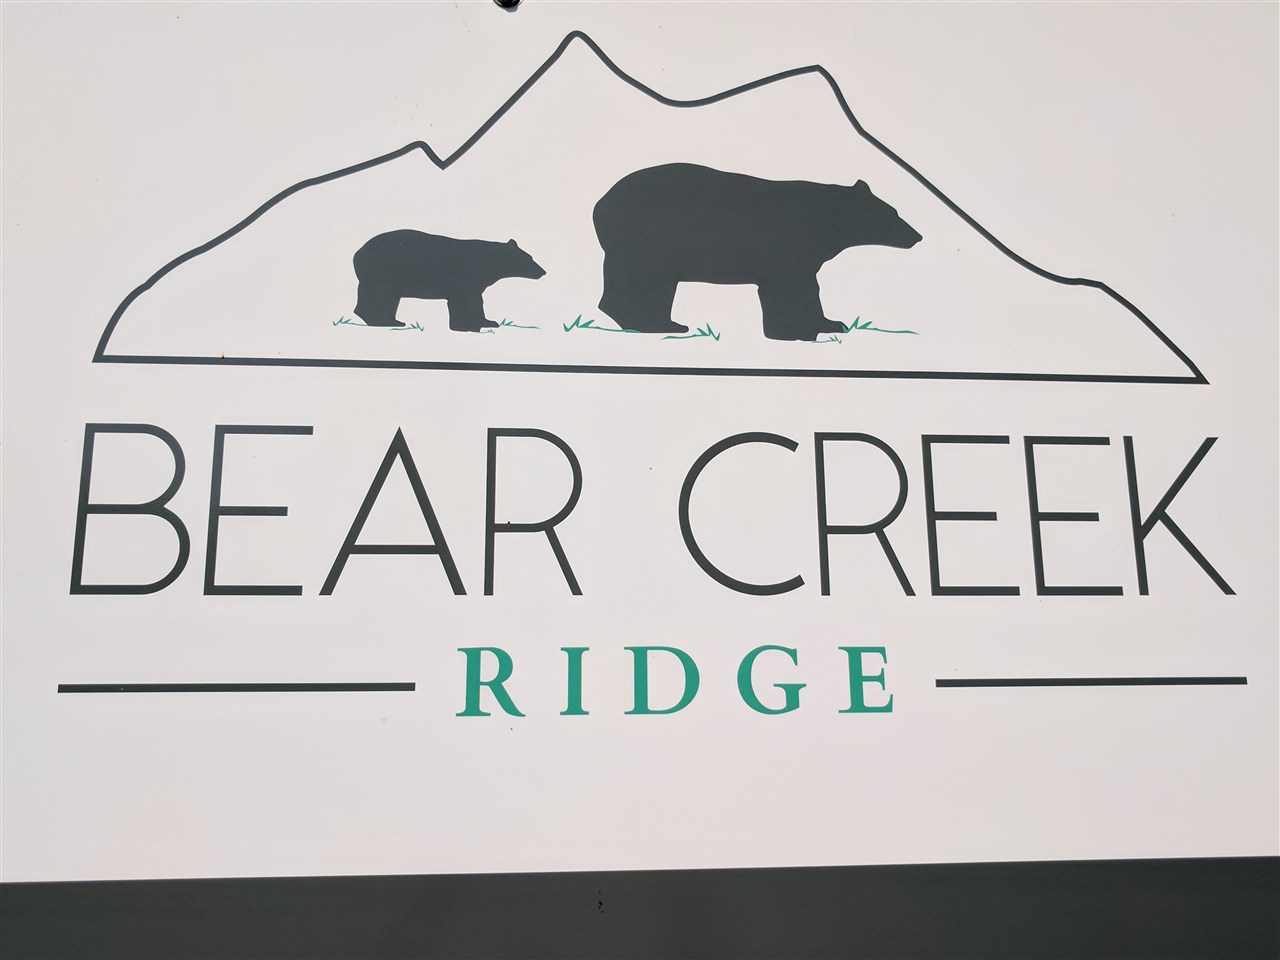 Bear Creek Ridge is a bare land strata of building lots that are now available on lower Promontory . Nice unobstructed view of Sardis and Vedder Crossing. A nice, quiet area to build your dream home. Roads and services are being installed and are expected to be completed this fall. Bring your builder or have the seller build to suit. Call for details.